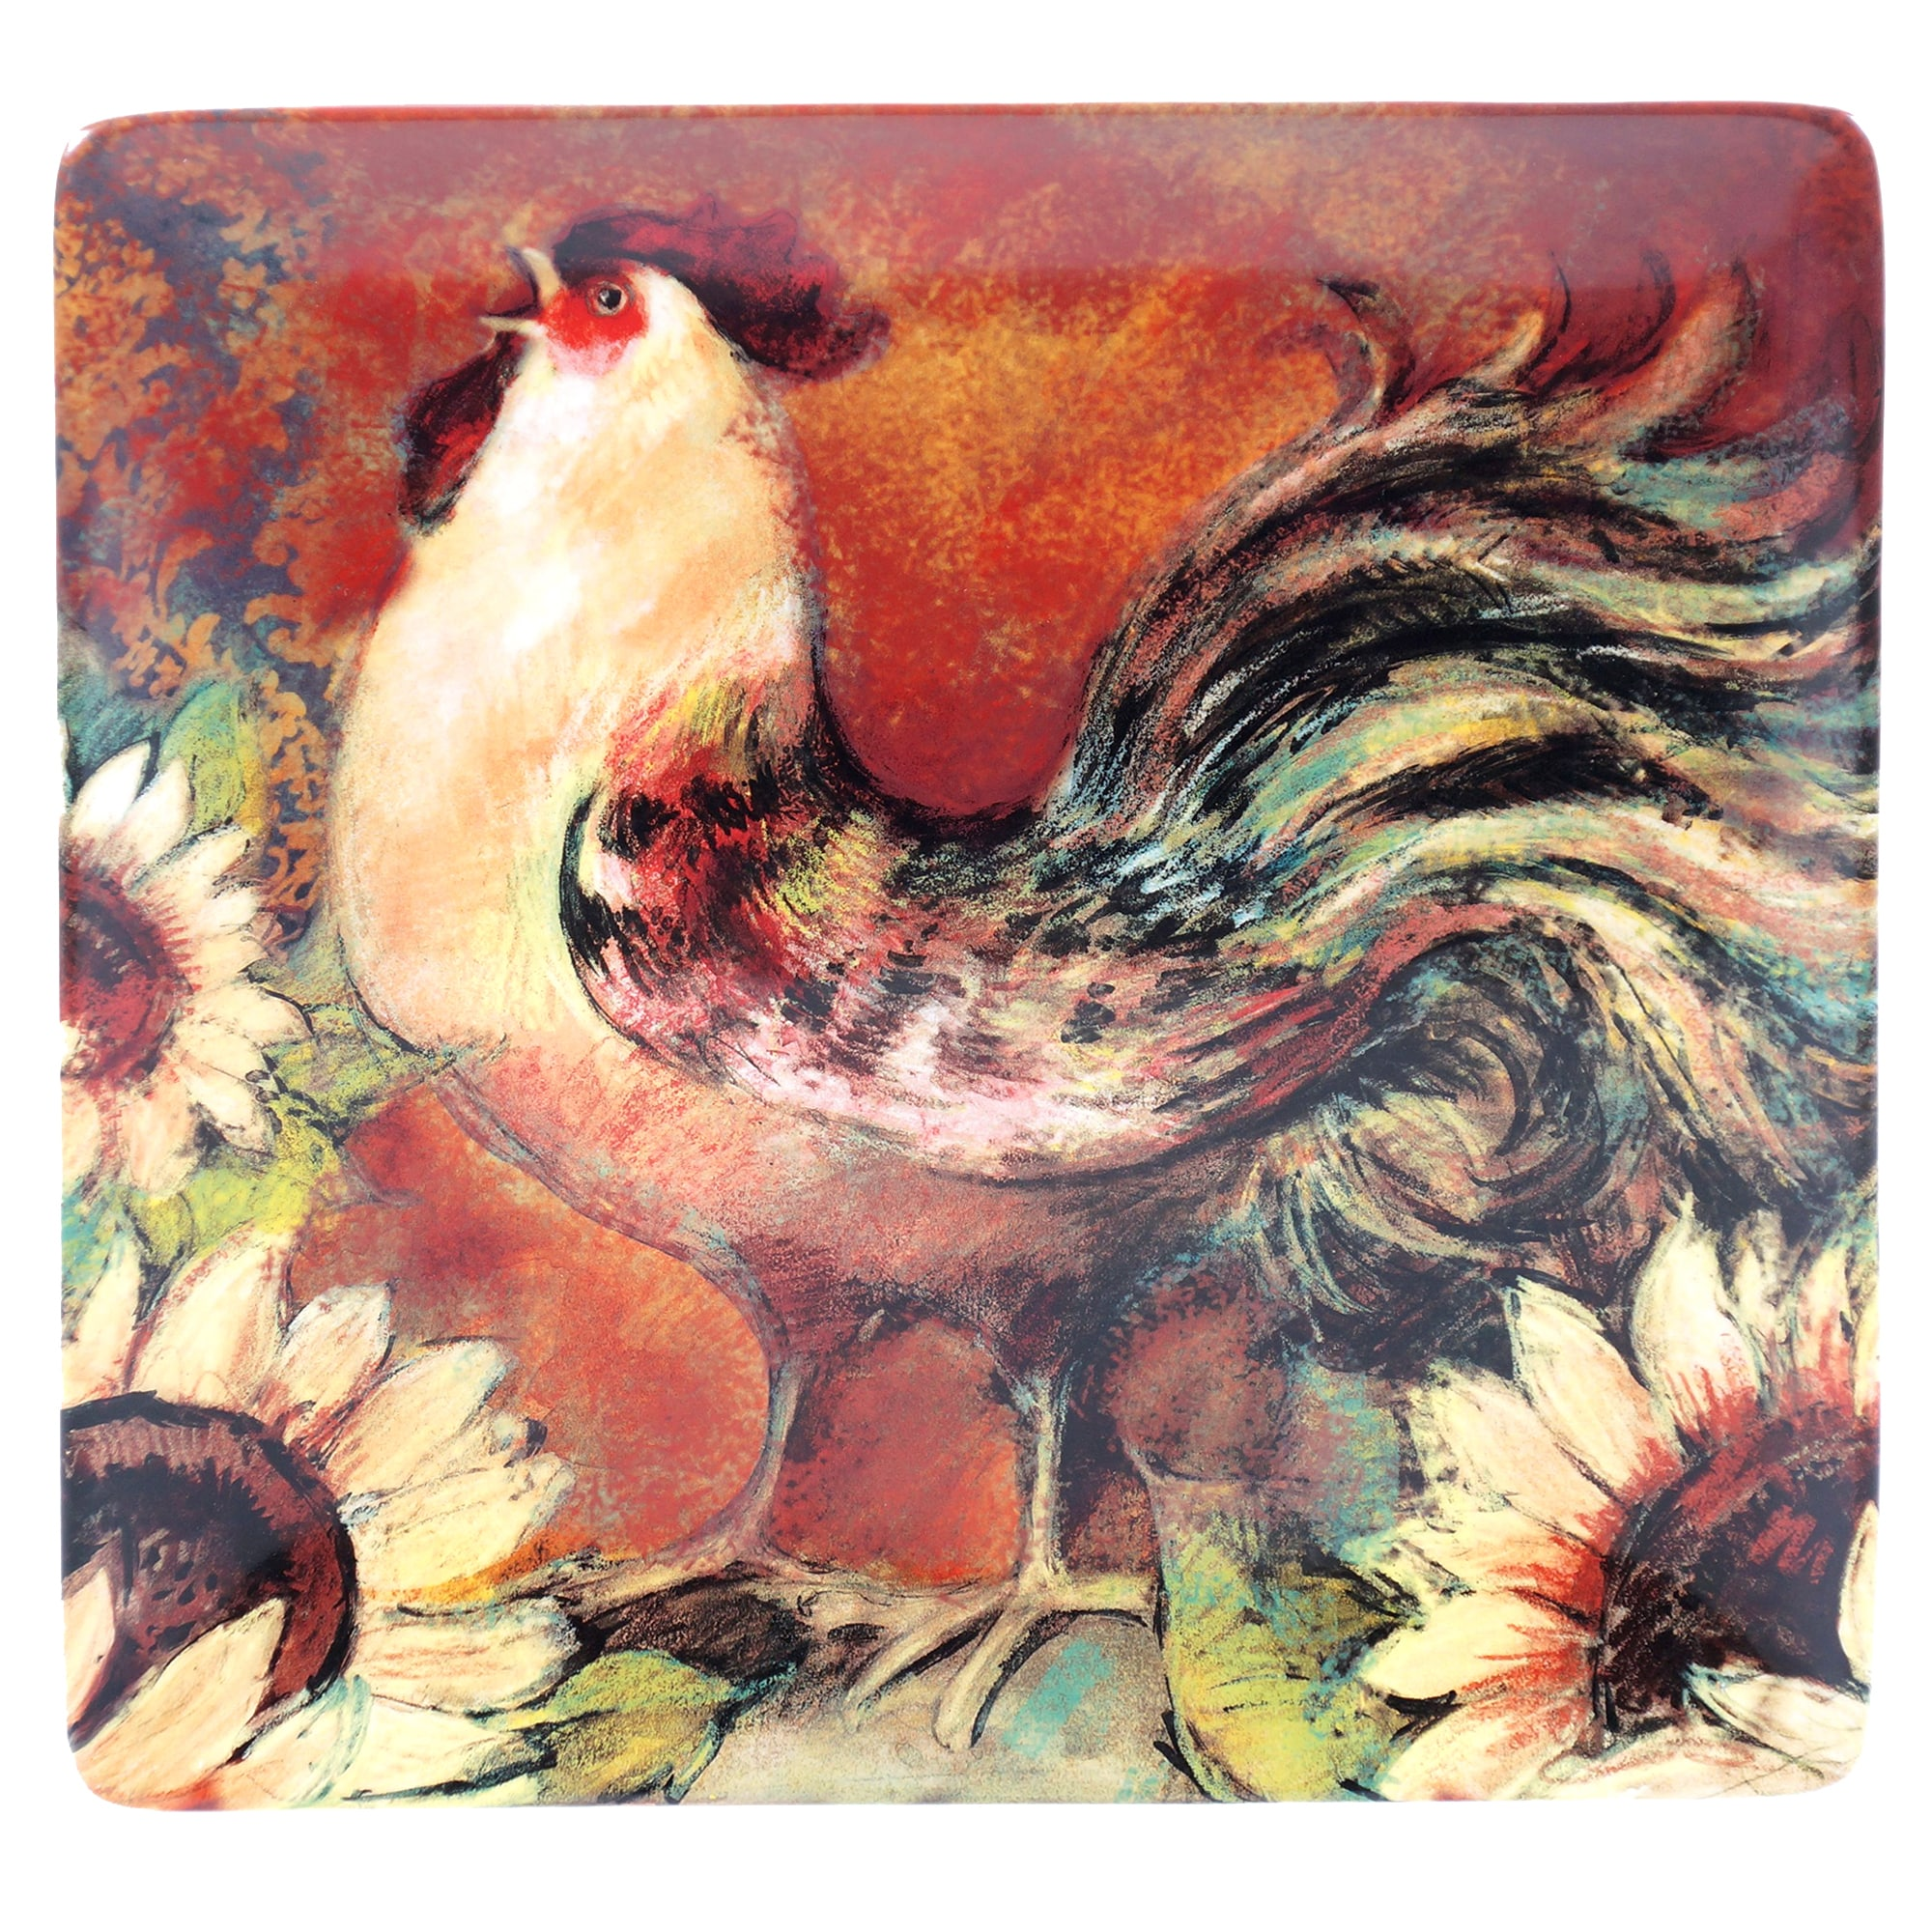 Certified Intl Sunflower Rooster Square Platter 12.5-inch...